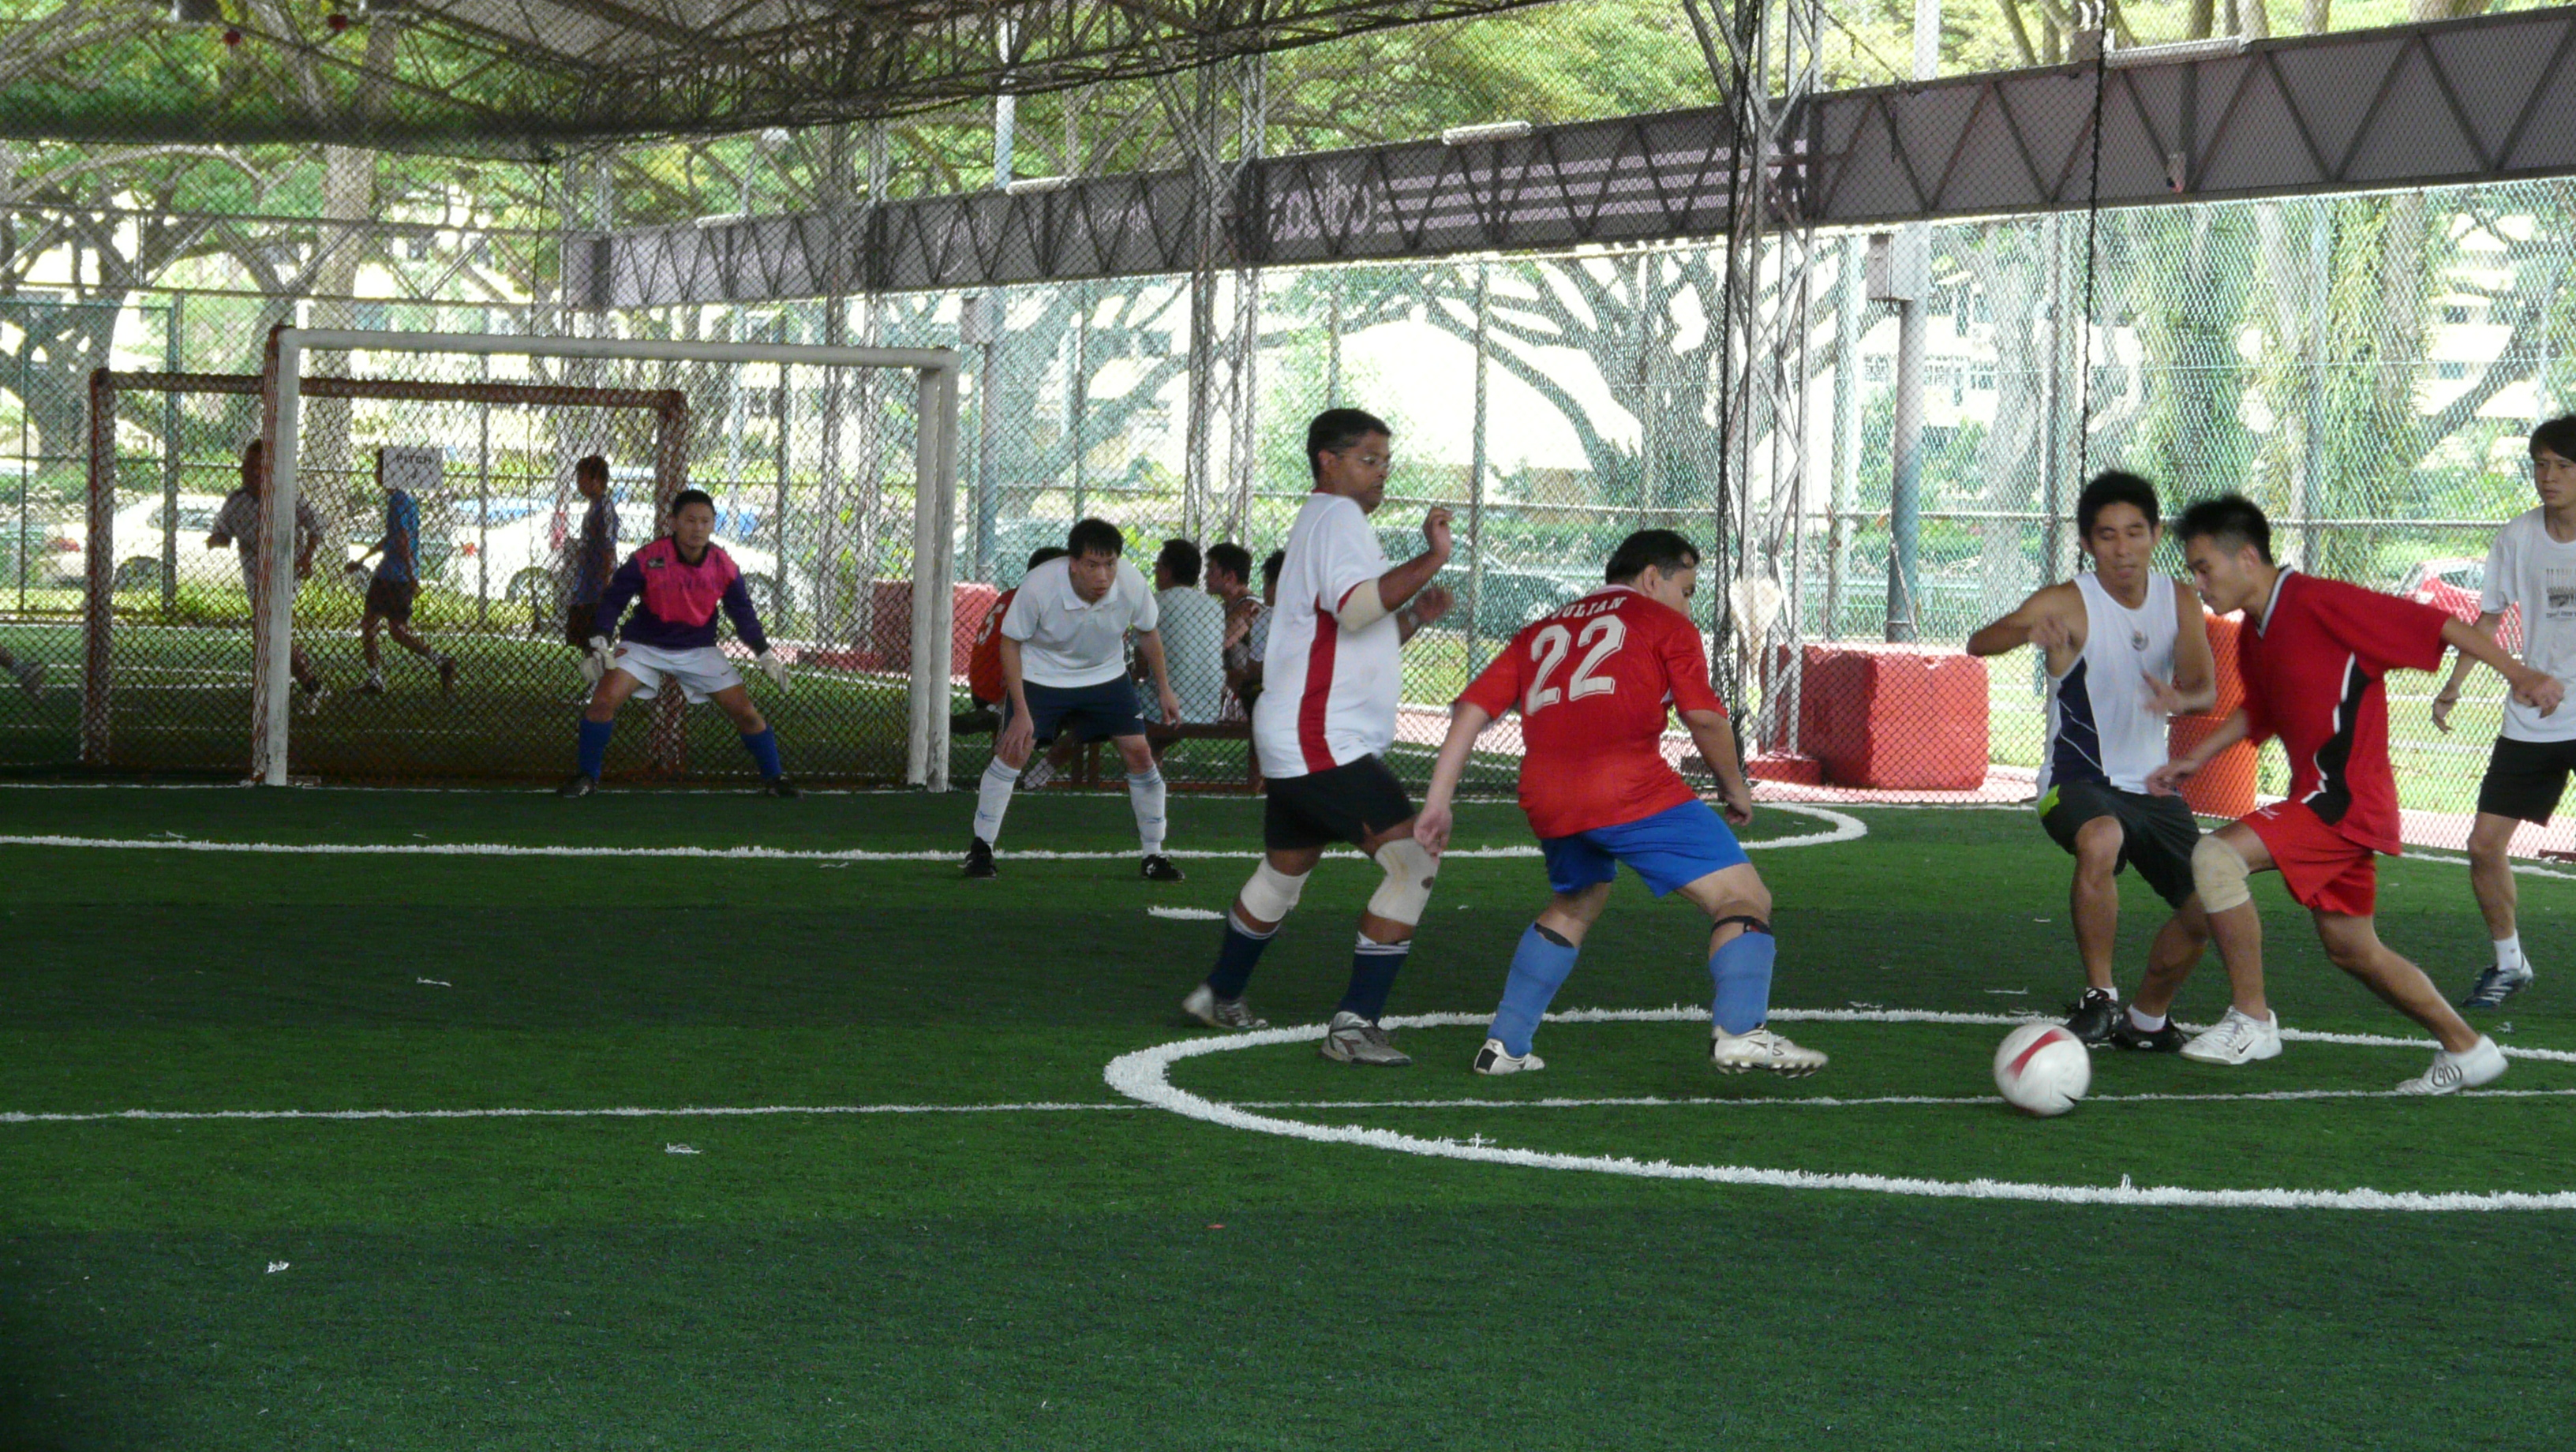 File:Indoor soccer singapore z.JPG - Wikipedia, the free encyclopedia